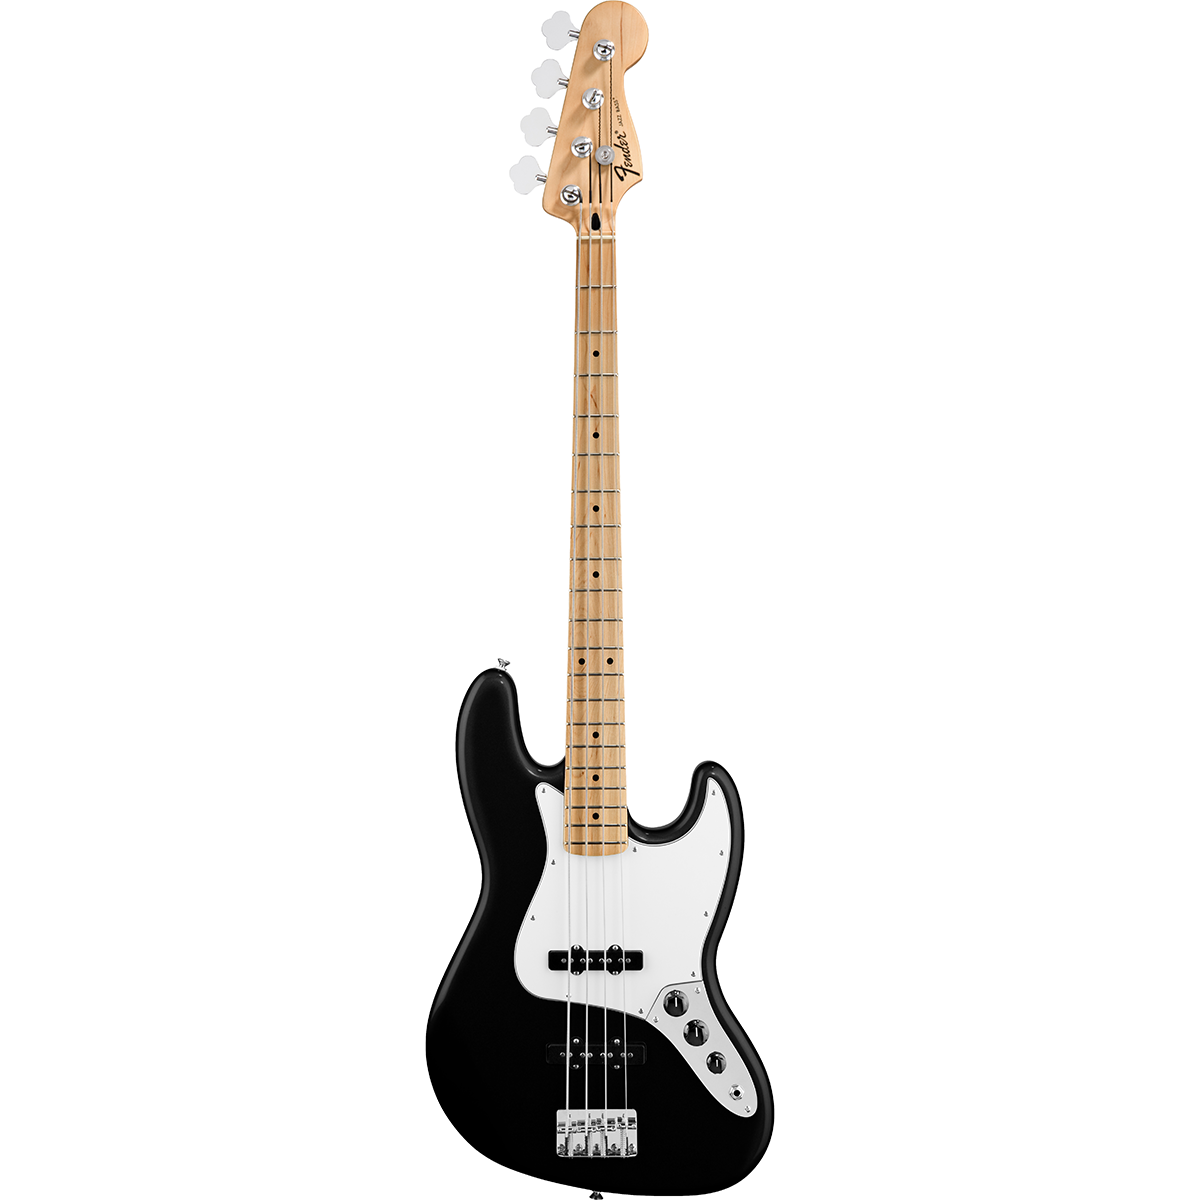 Fender StandardJazzBass,MN,BLK el-bas sort